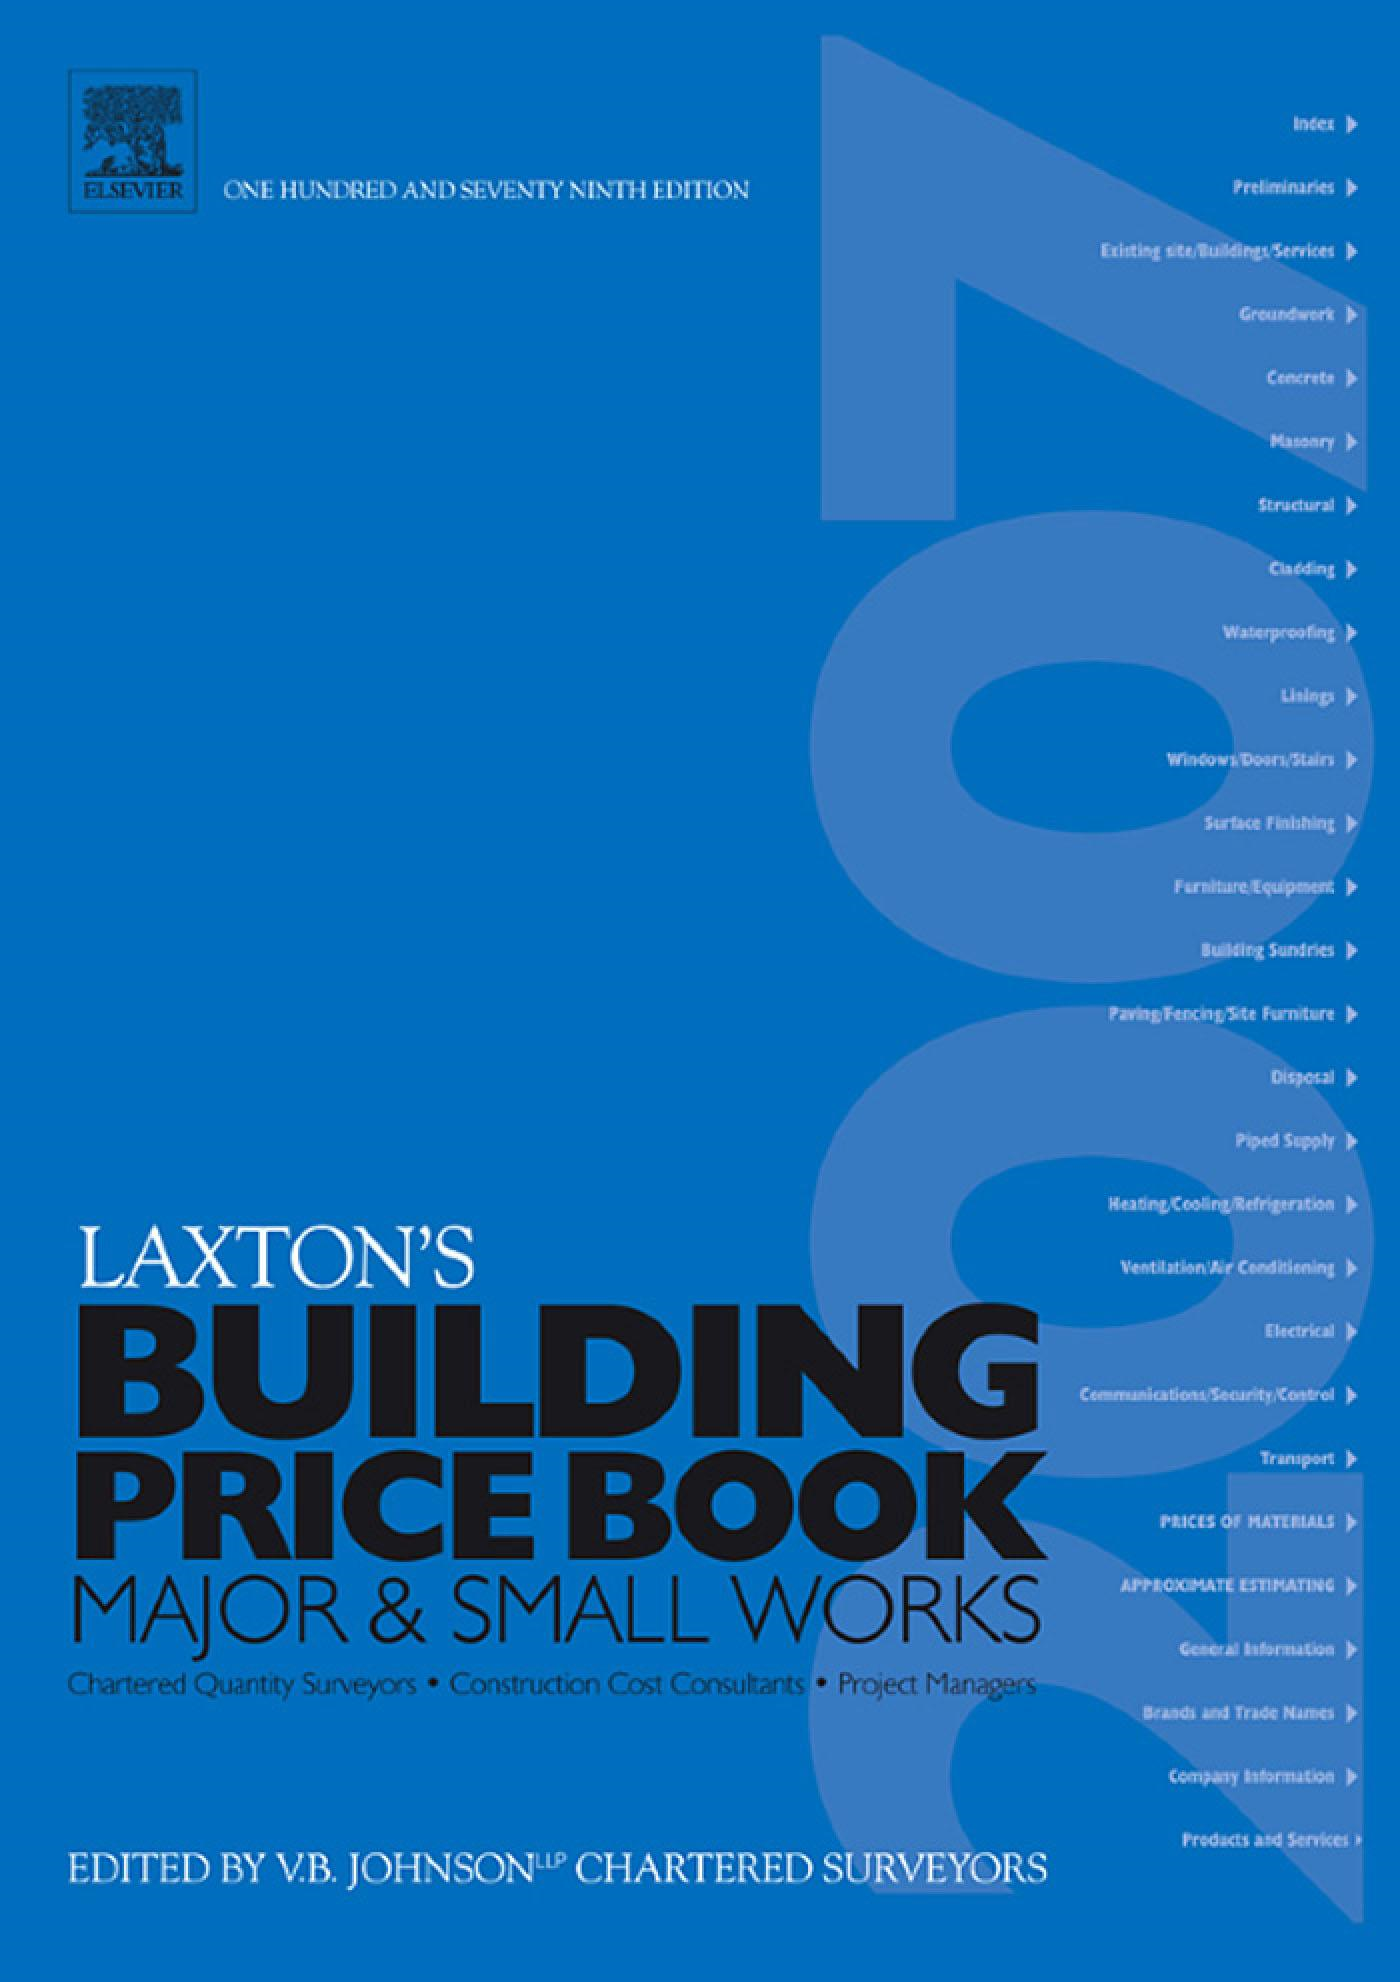 LAXTON'S BUILDING PRICE BOOK 2007